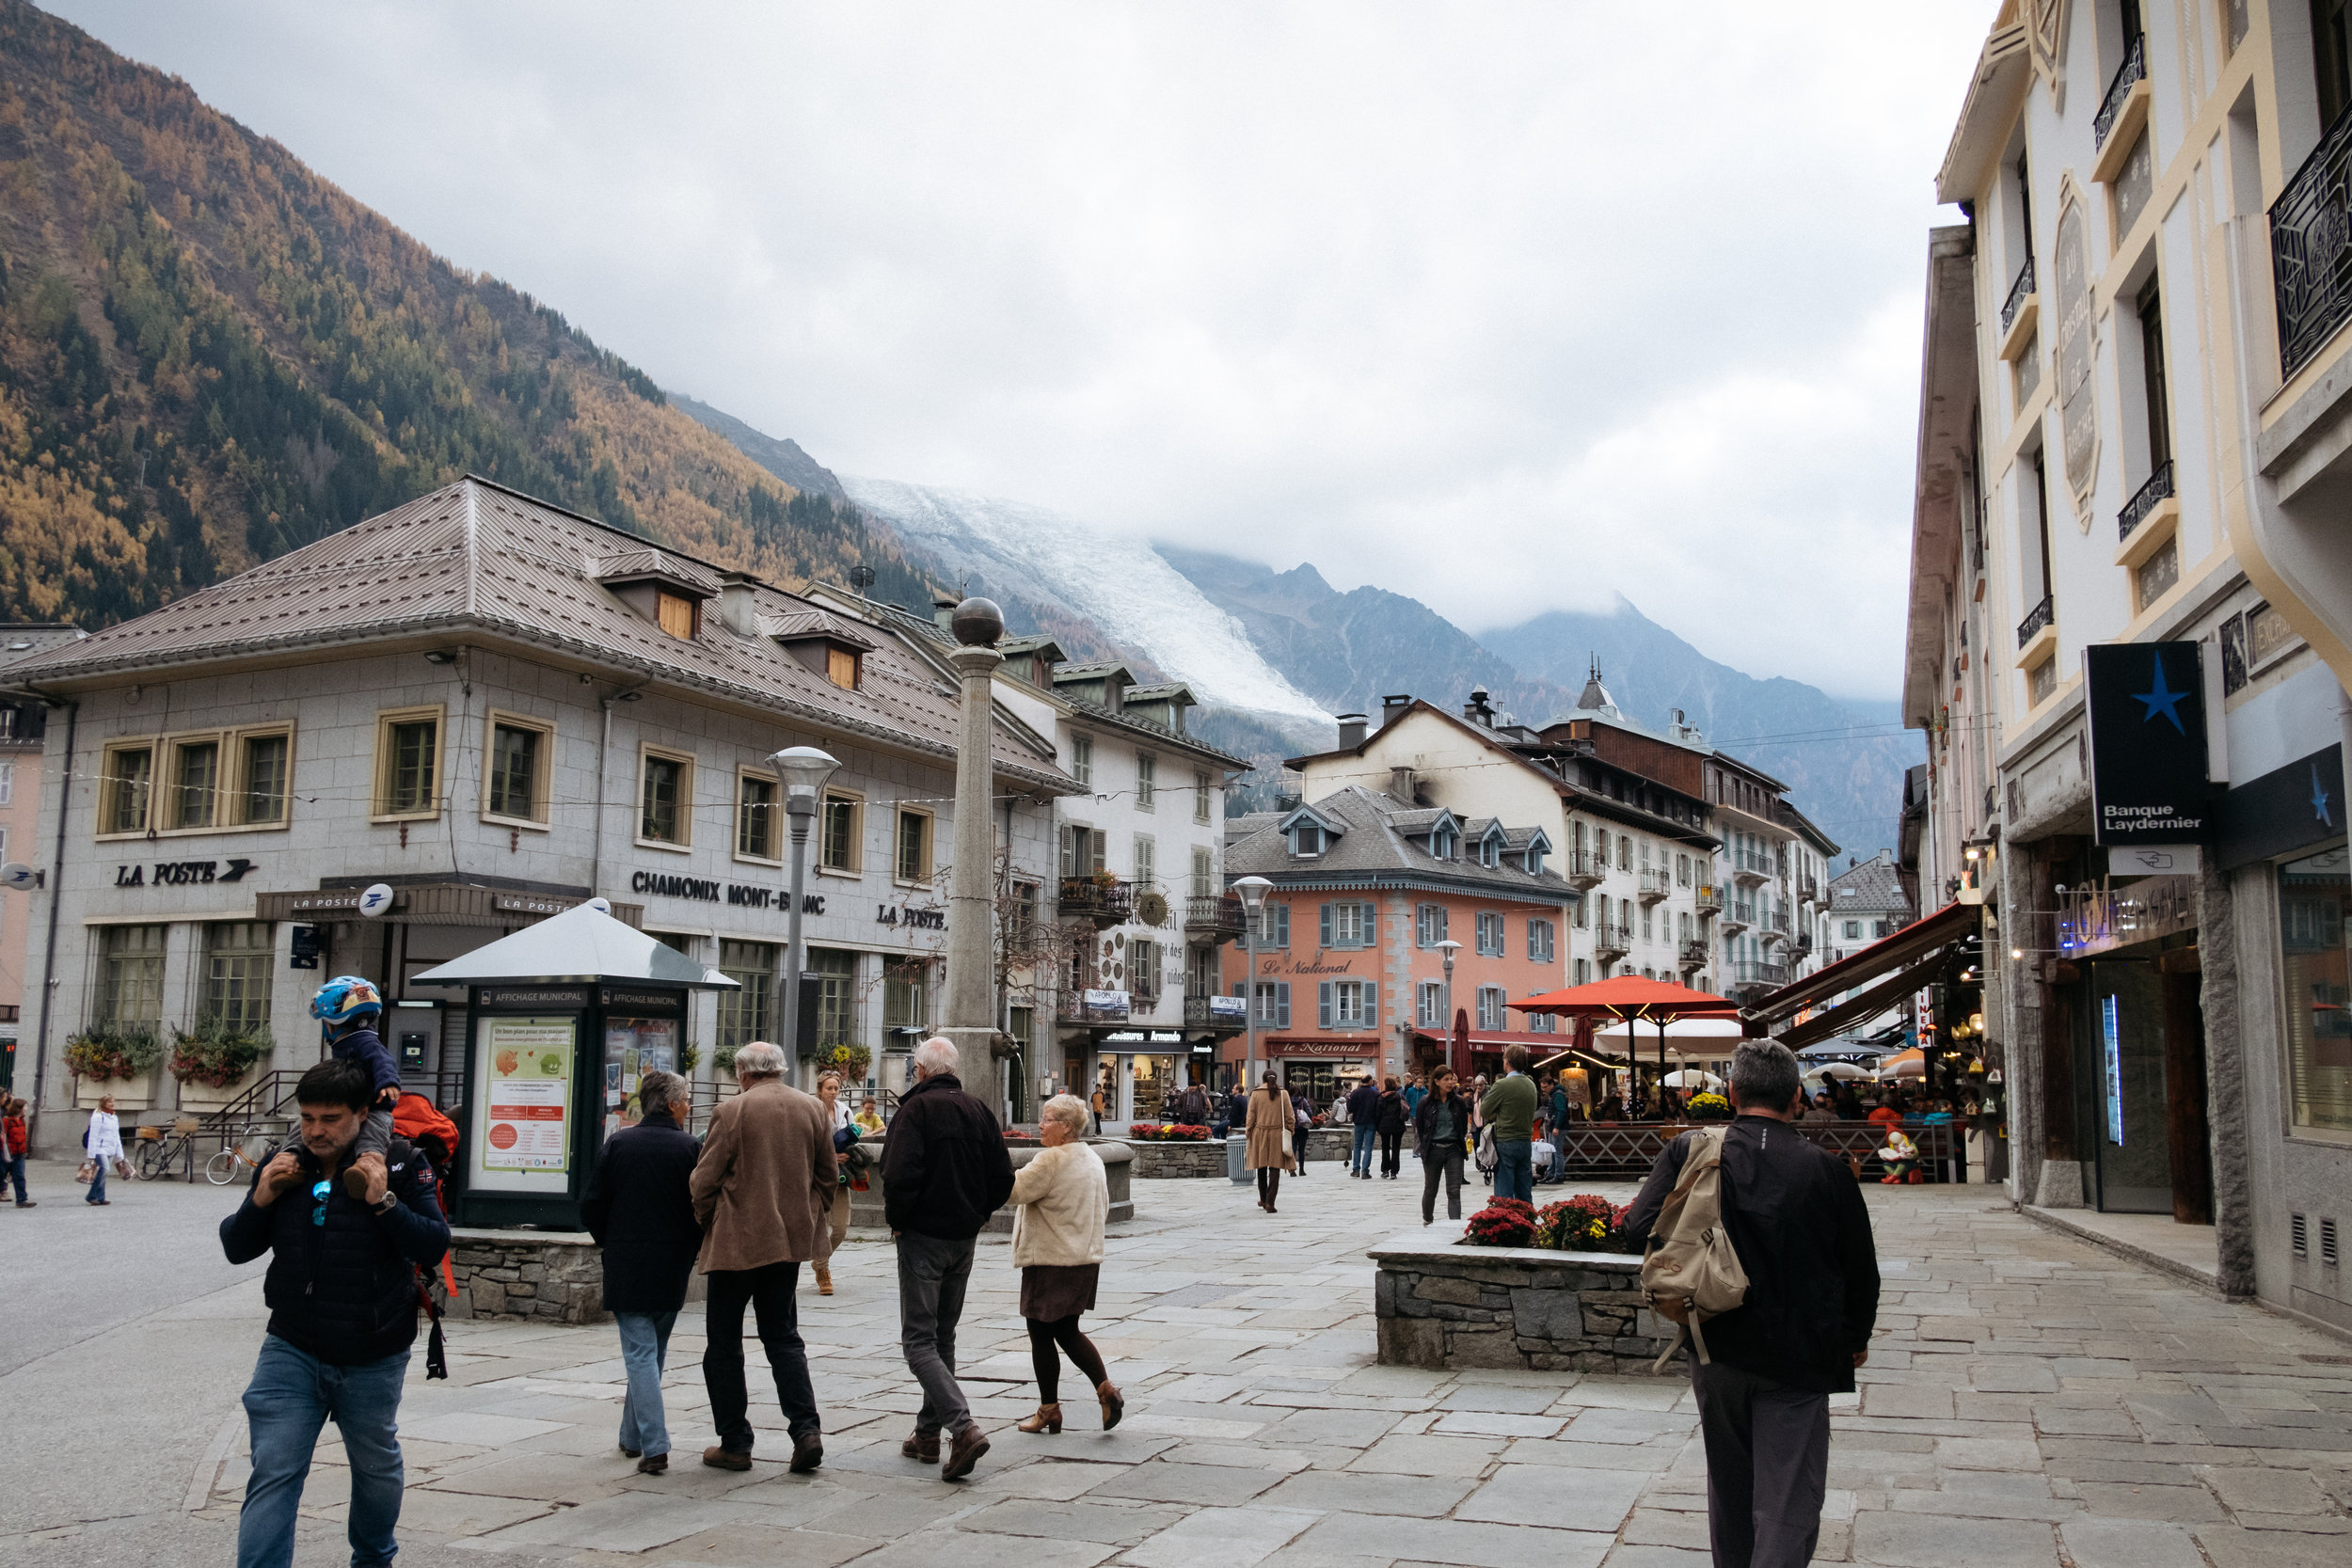 Chamonix town centre with Bossons Glacier